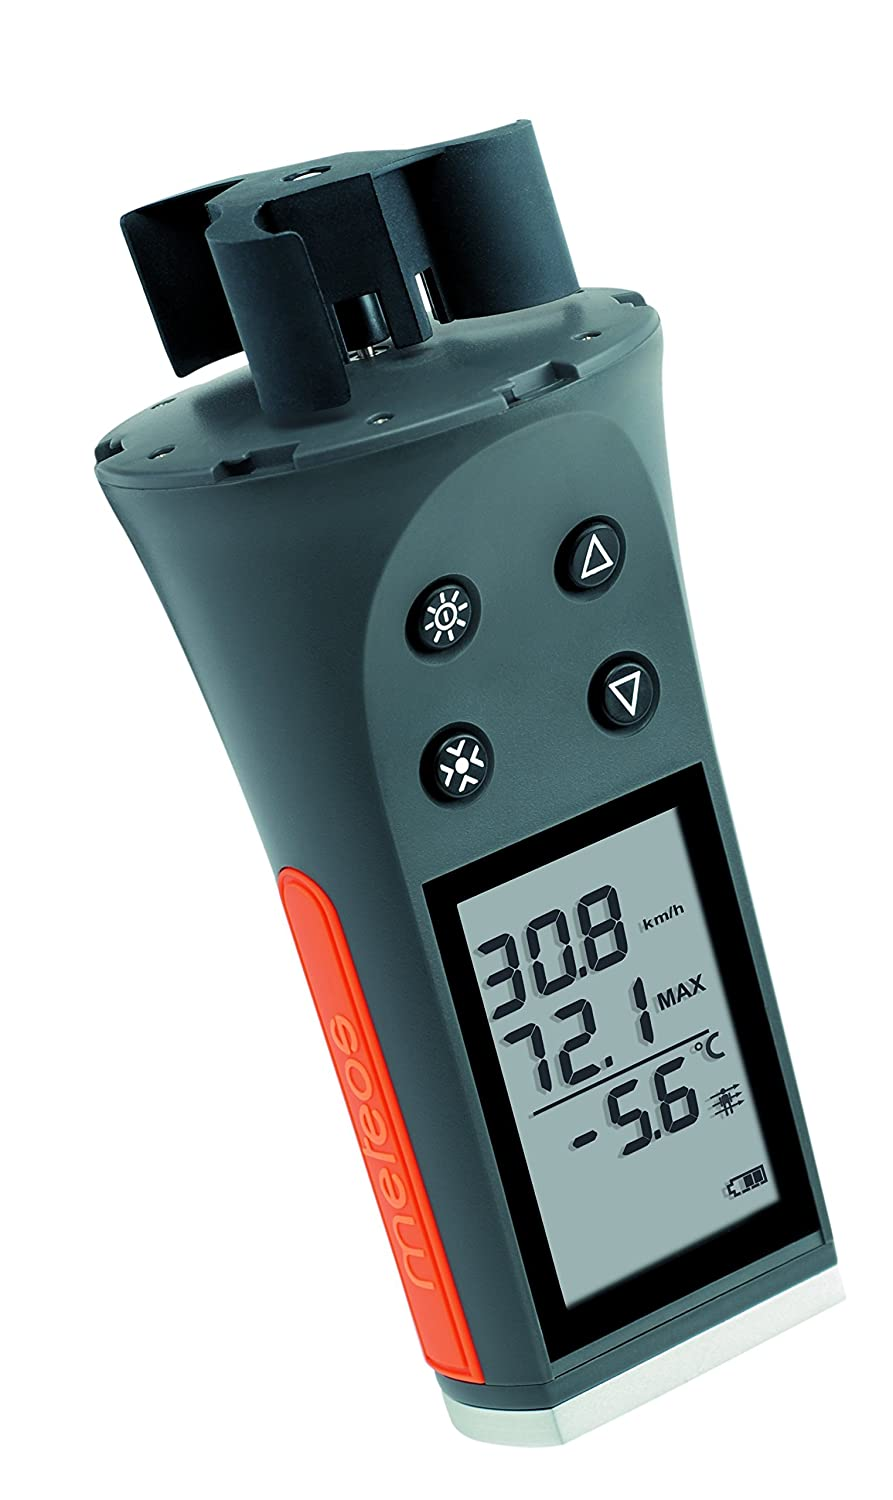 Skywatch JDC Meteos Windmesser in grau/orange